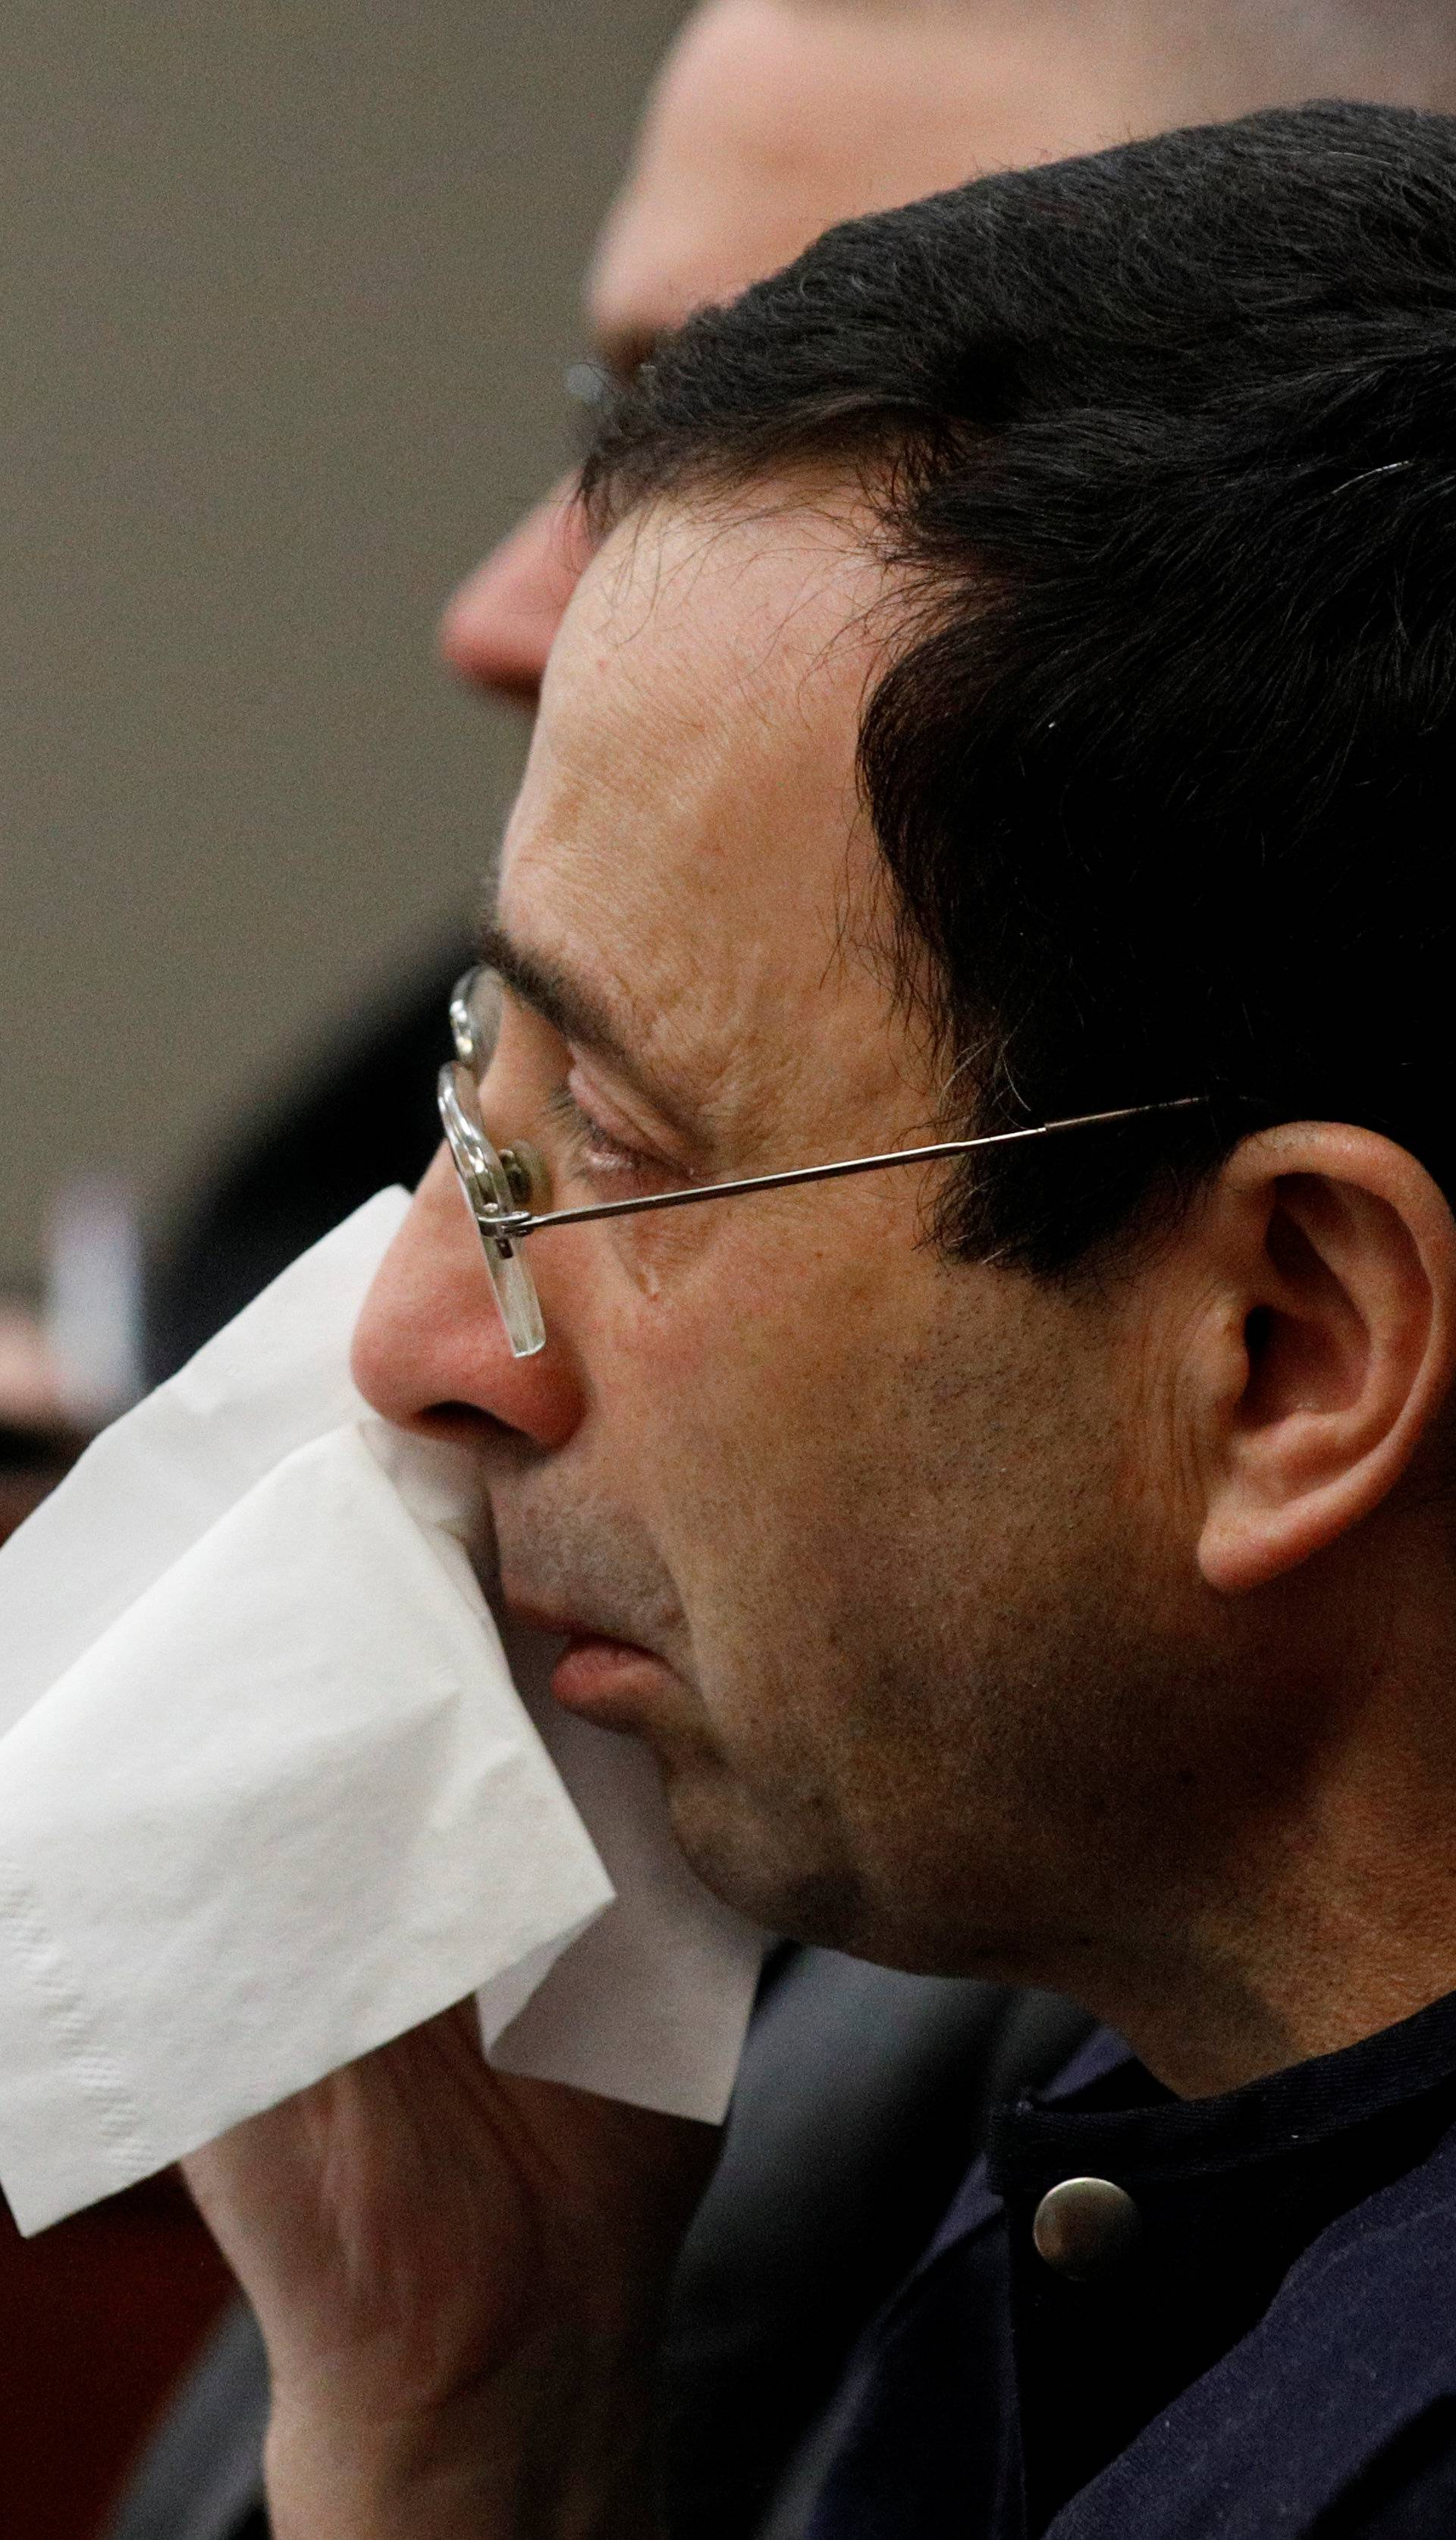 Larry Nassar, a former team USA Gymnastics doctor who pleaded guilty in November 2017 to sexual assault charges, sits in the courtroom during his sentencing hearing in Lansing, Michigan